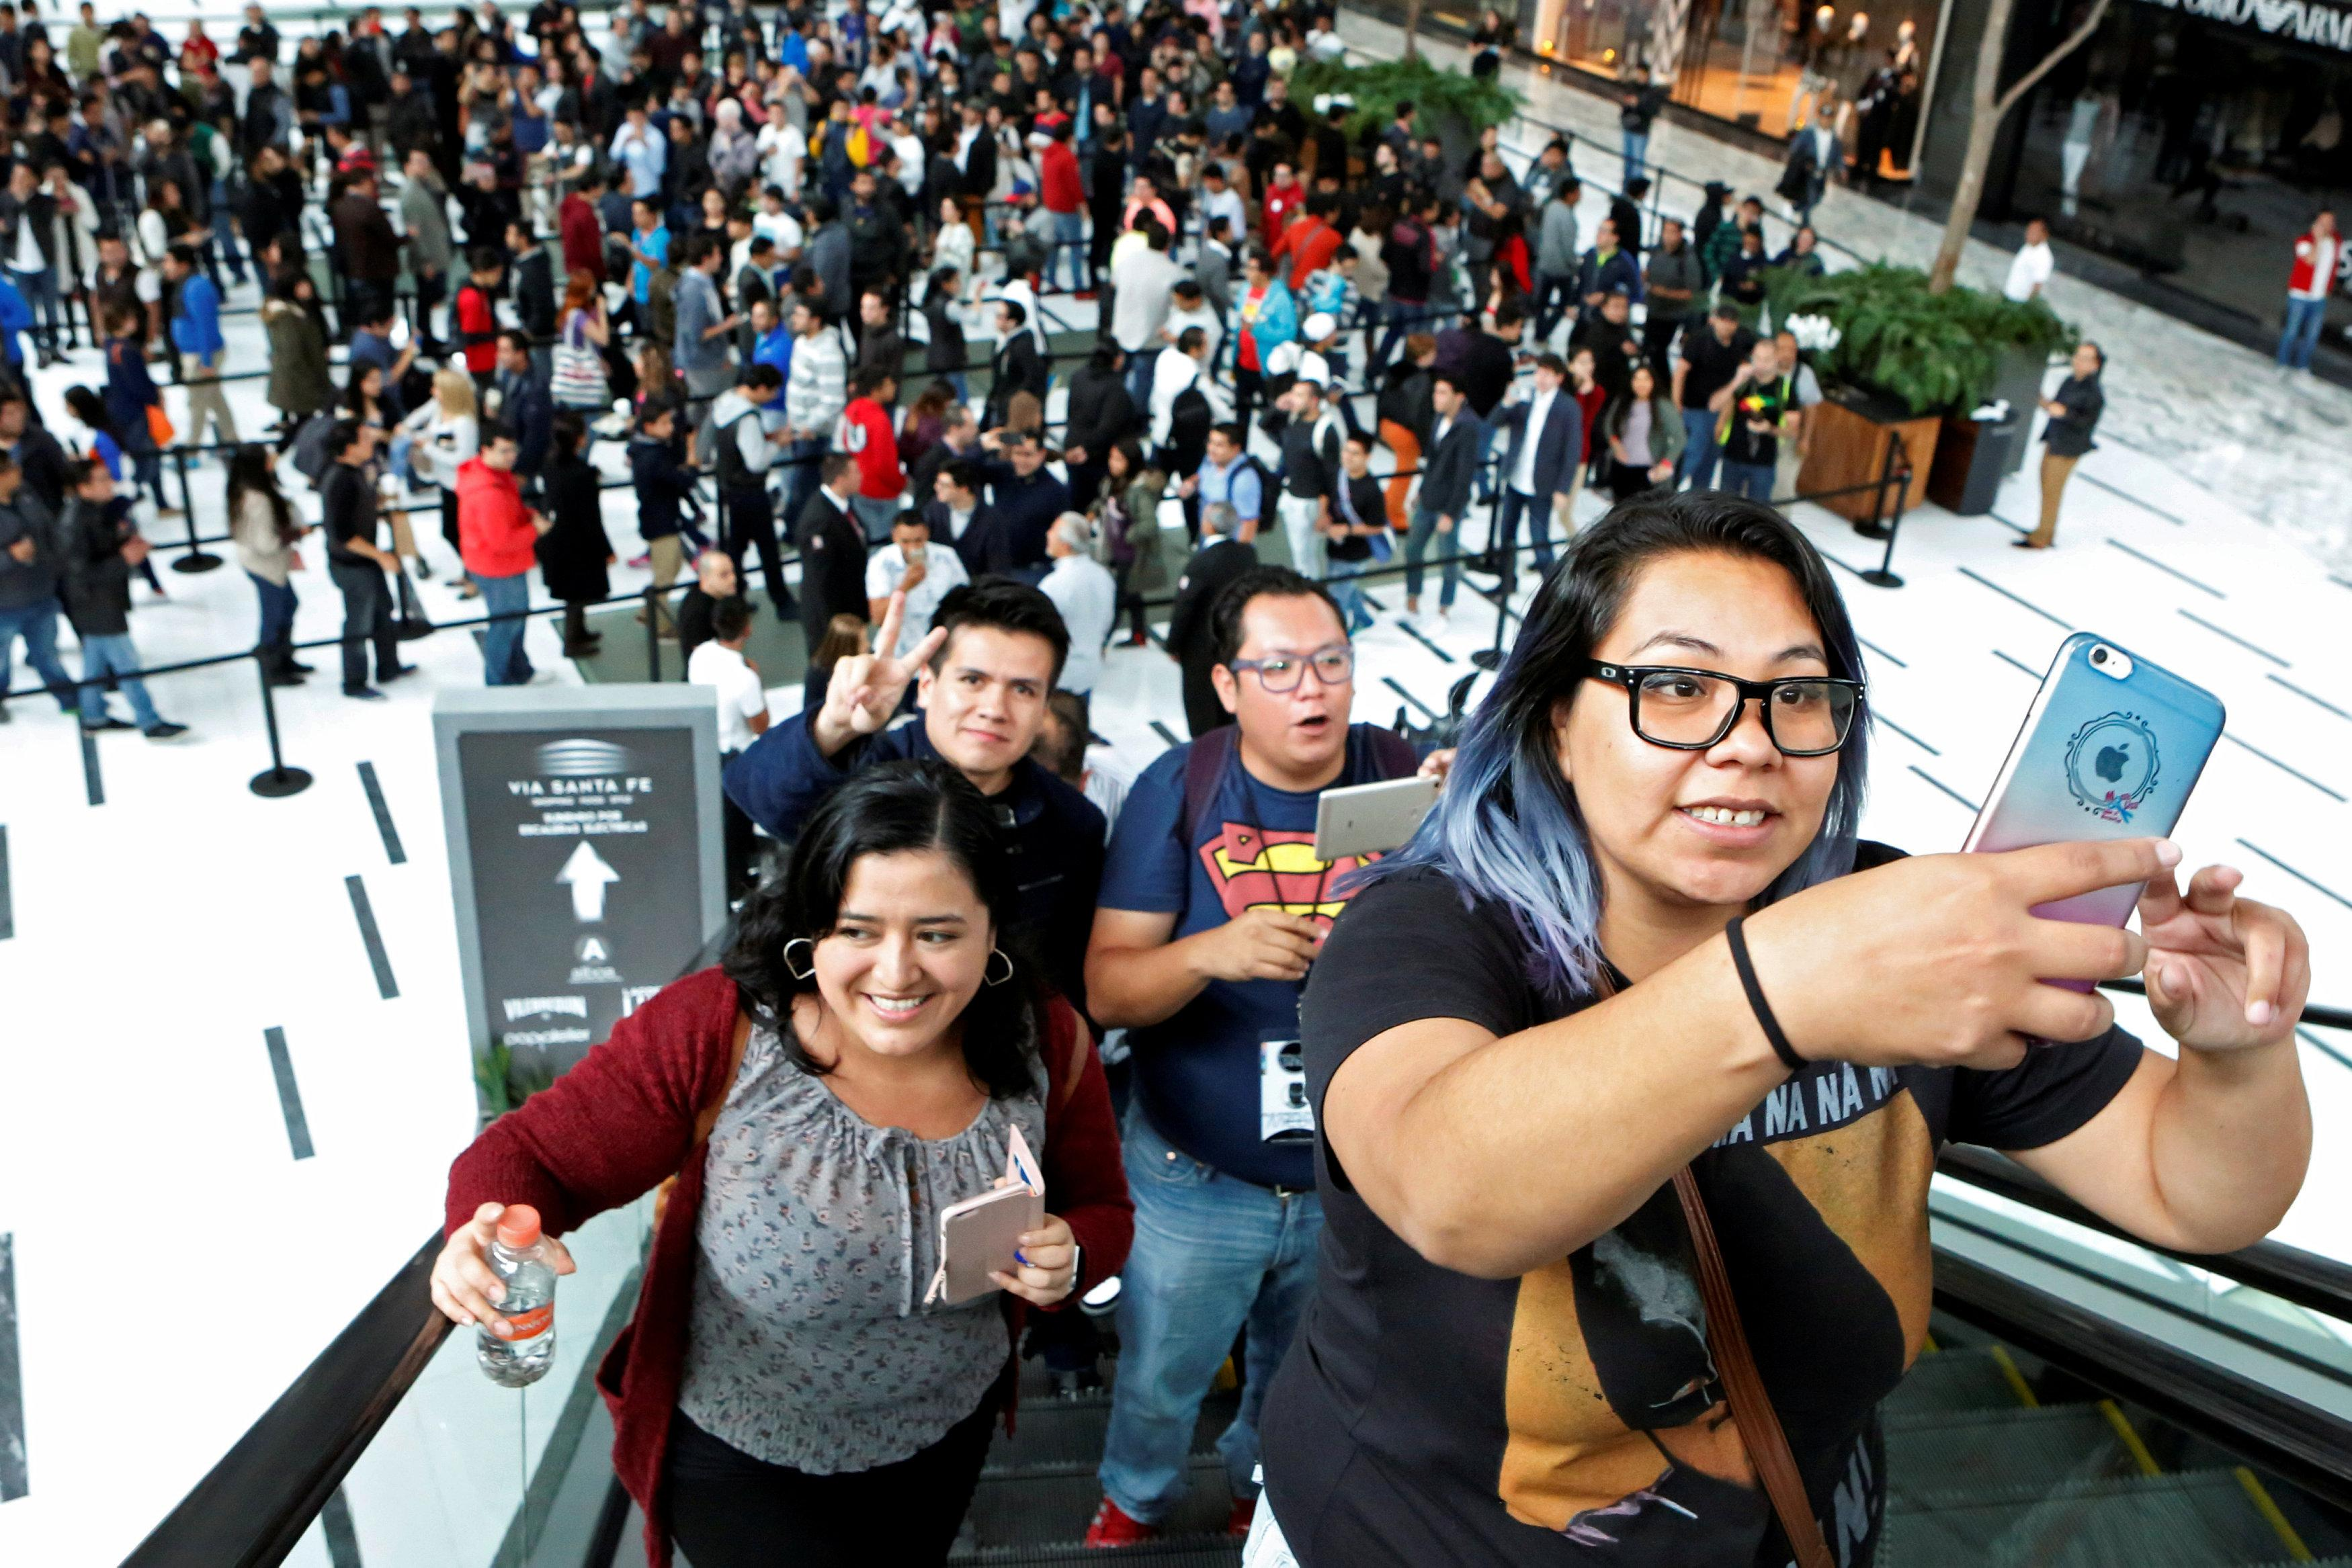 A customer takes as selfie as she waits in the queue for the opening of the first Apple Store in Mexico City, Mexico September 24, 2016.  Ginnette Riquelme